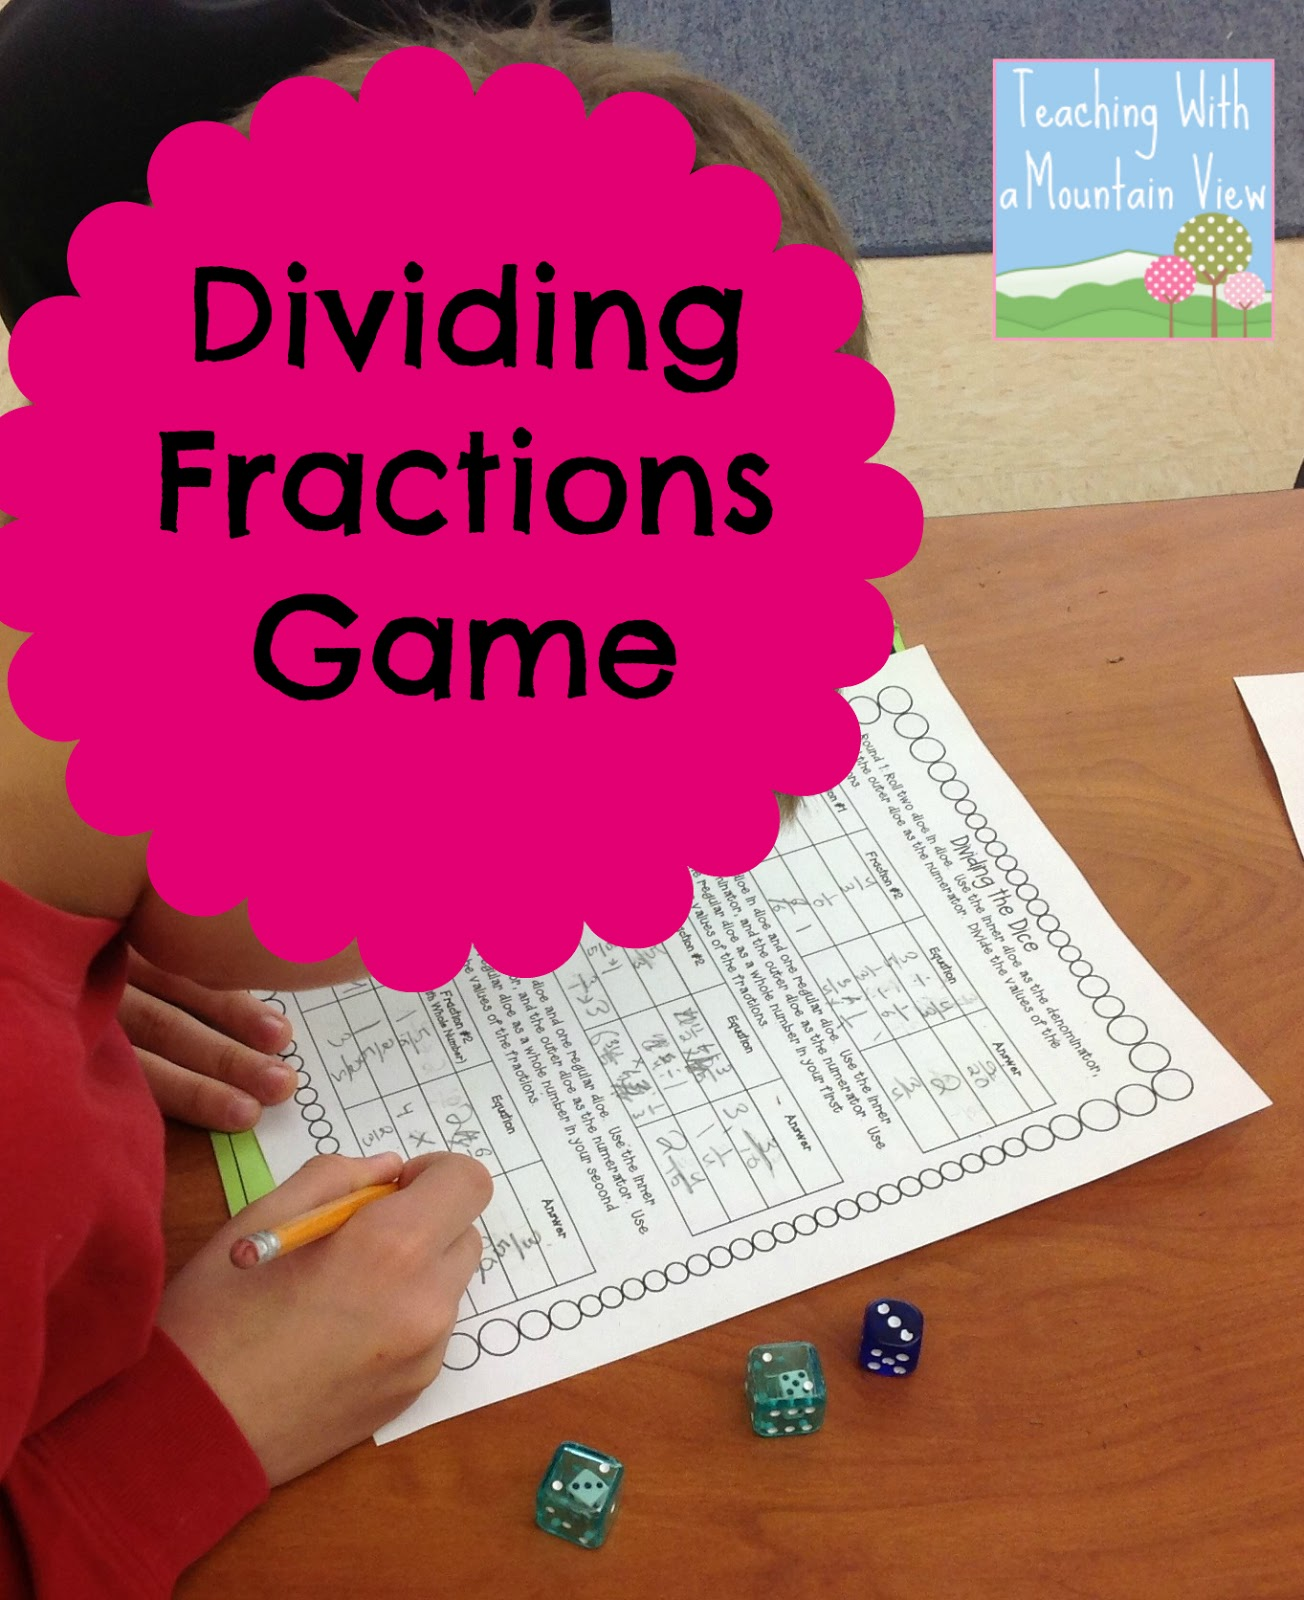 photograph about Dividing Fractions Games Printable identified as Coaching With a Mountain Opinion: Dividing Fractions Anchor